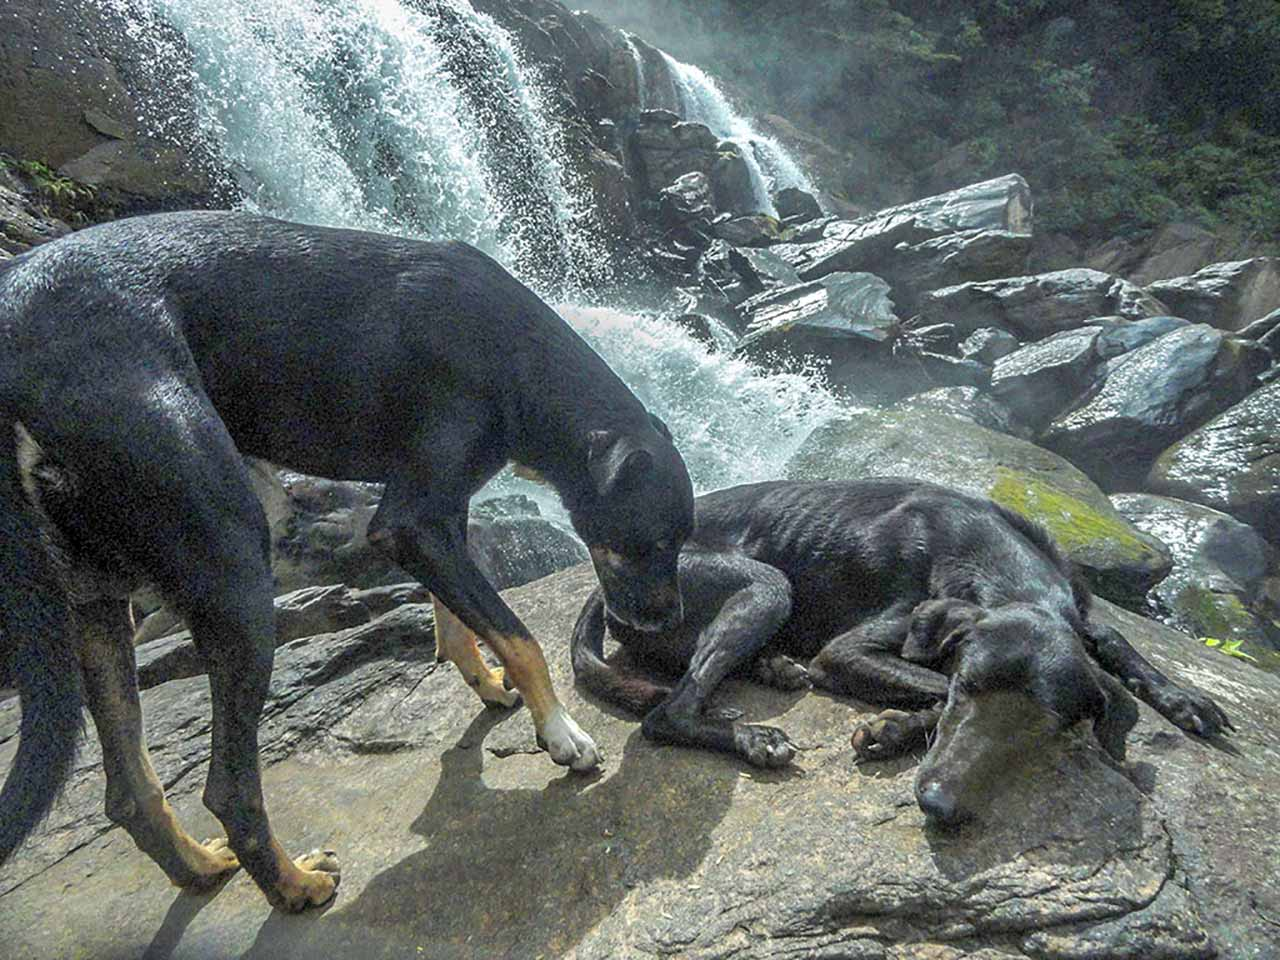 Dogs accompanying to waterfall